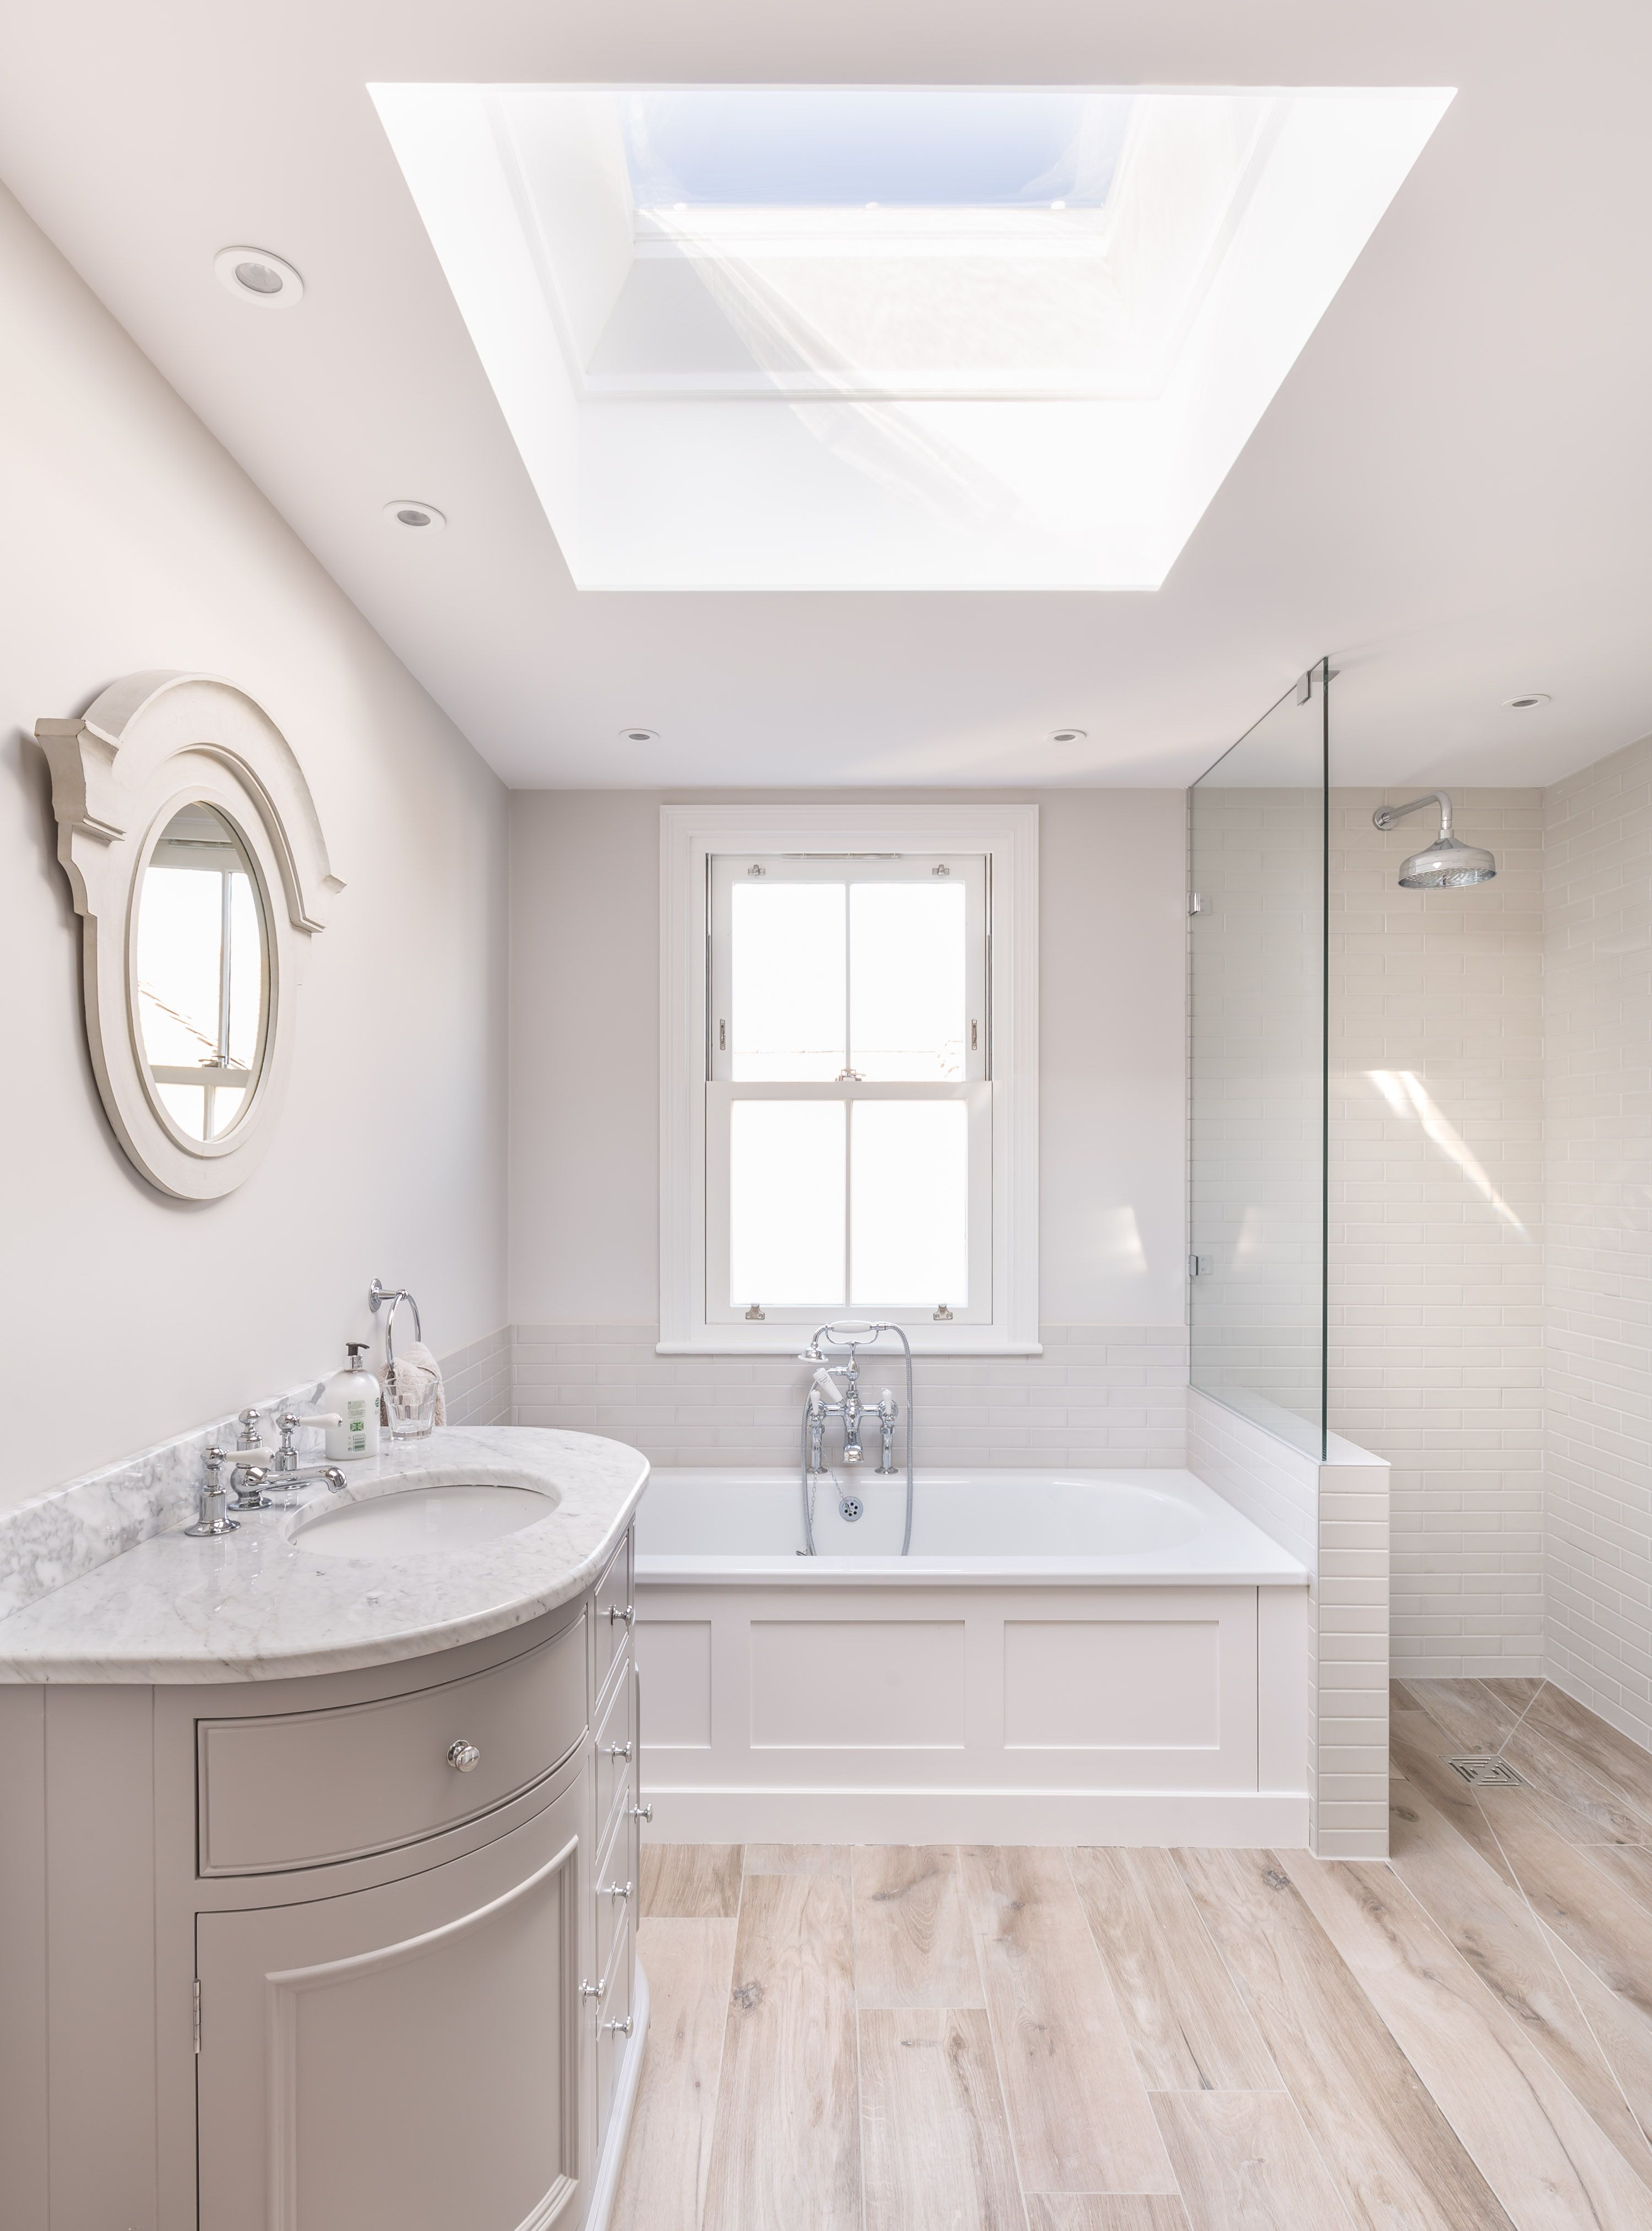 Modern victorian bathroom renovation | bath | walk in shower ...